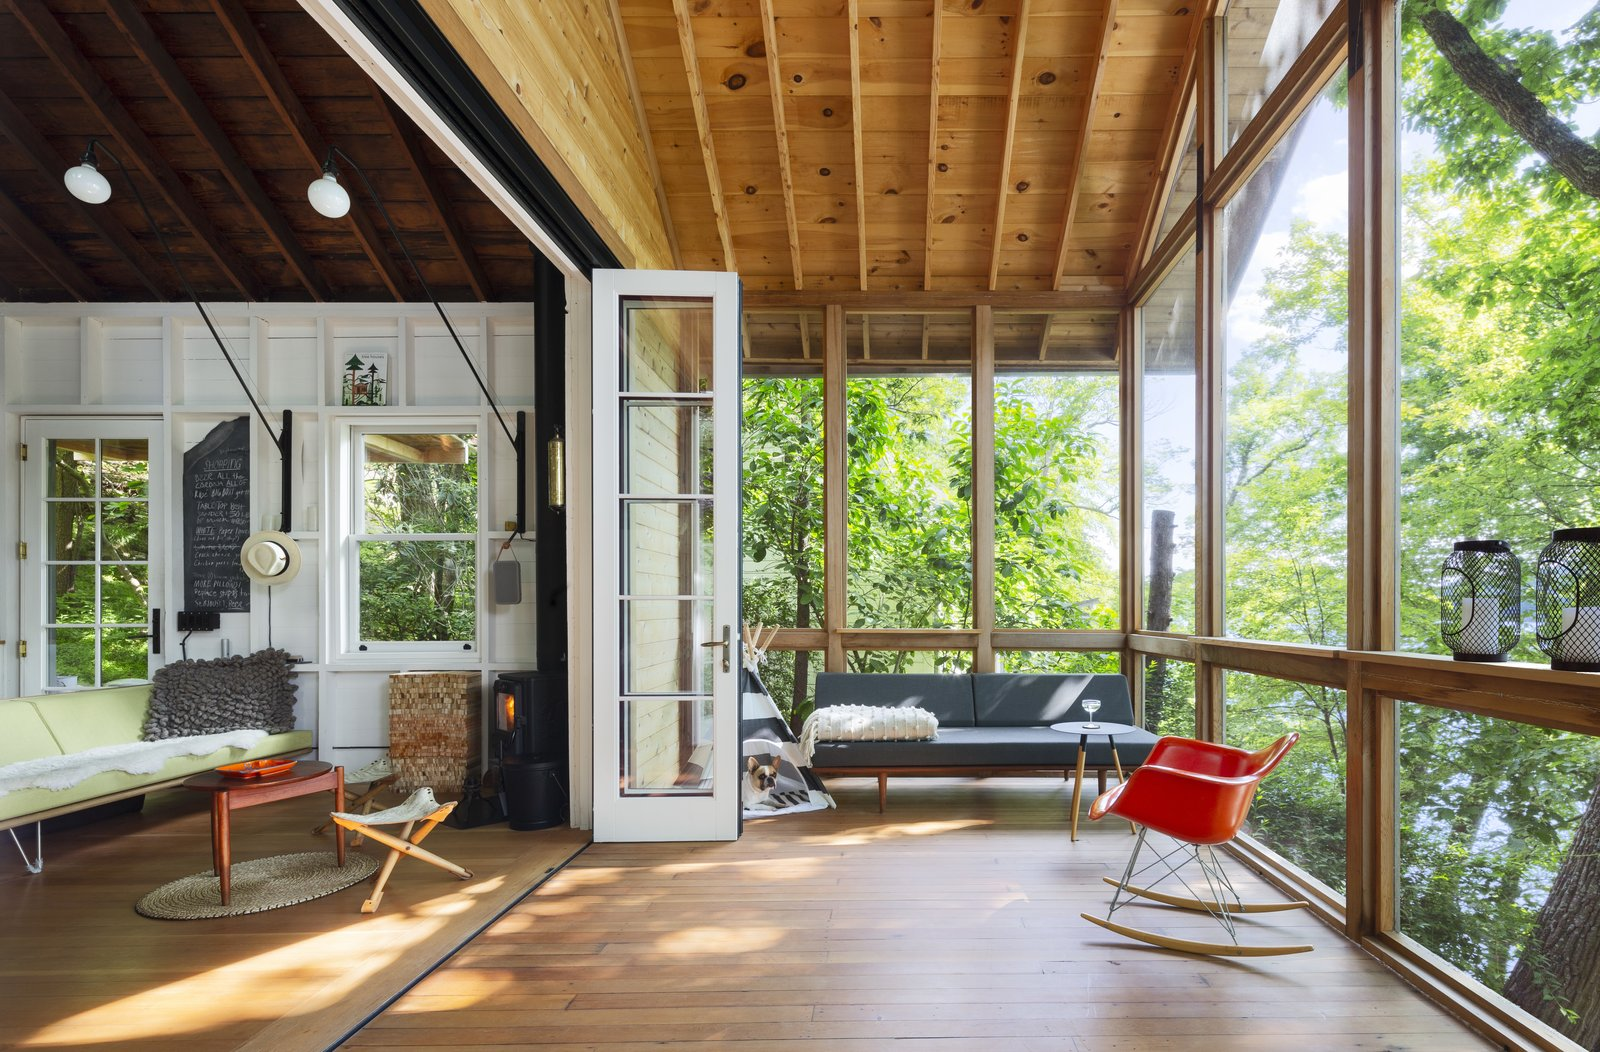 Living Room, Wood Burning Fireplace, Rug Floor, Coffee Tables, Chair, Sofa, Medium Hardwood Floor, and Wall Lighting  Photos from This Lakeside Cabin in New York Is Offbeat in the Best Way